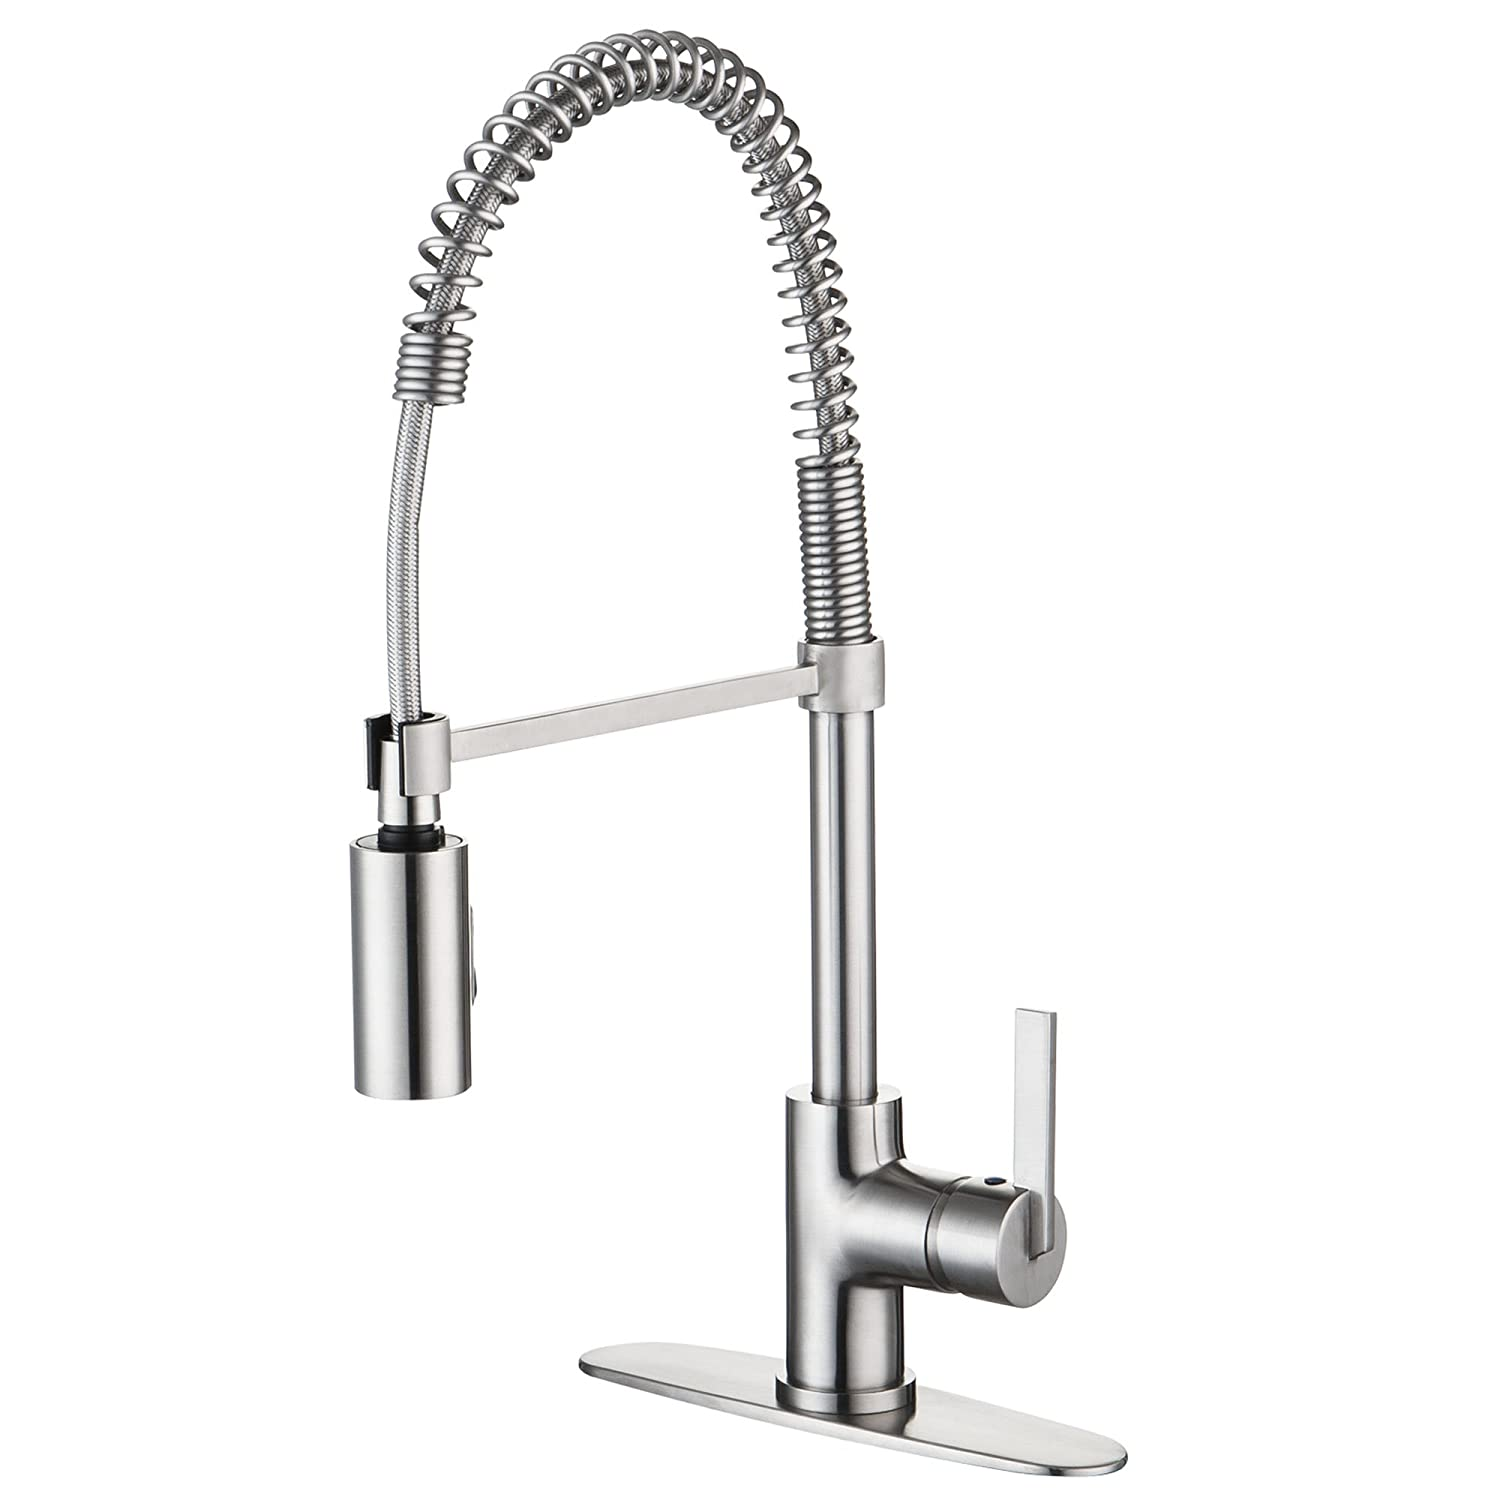 enzo rodi erfap modern commercial kitchen faucet with  - enzo rodi erfap modern commercial kitchen faucet with pulldownsprayer stainless steel   amazoncom